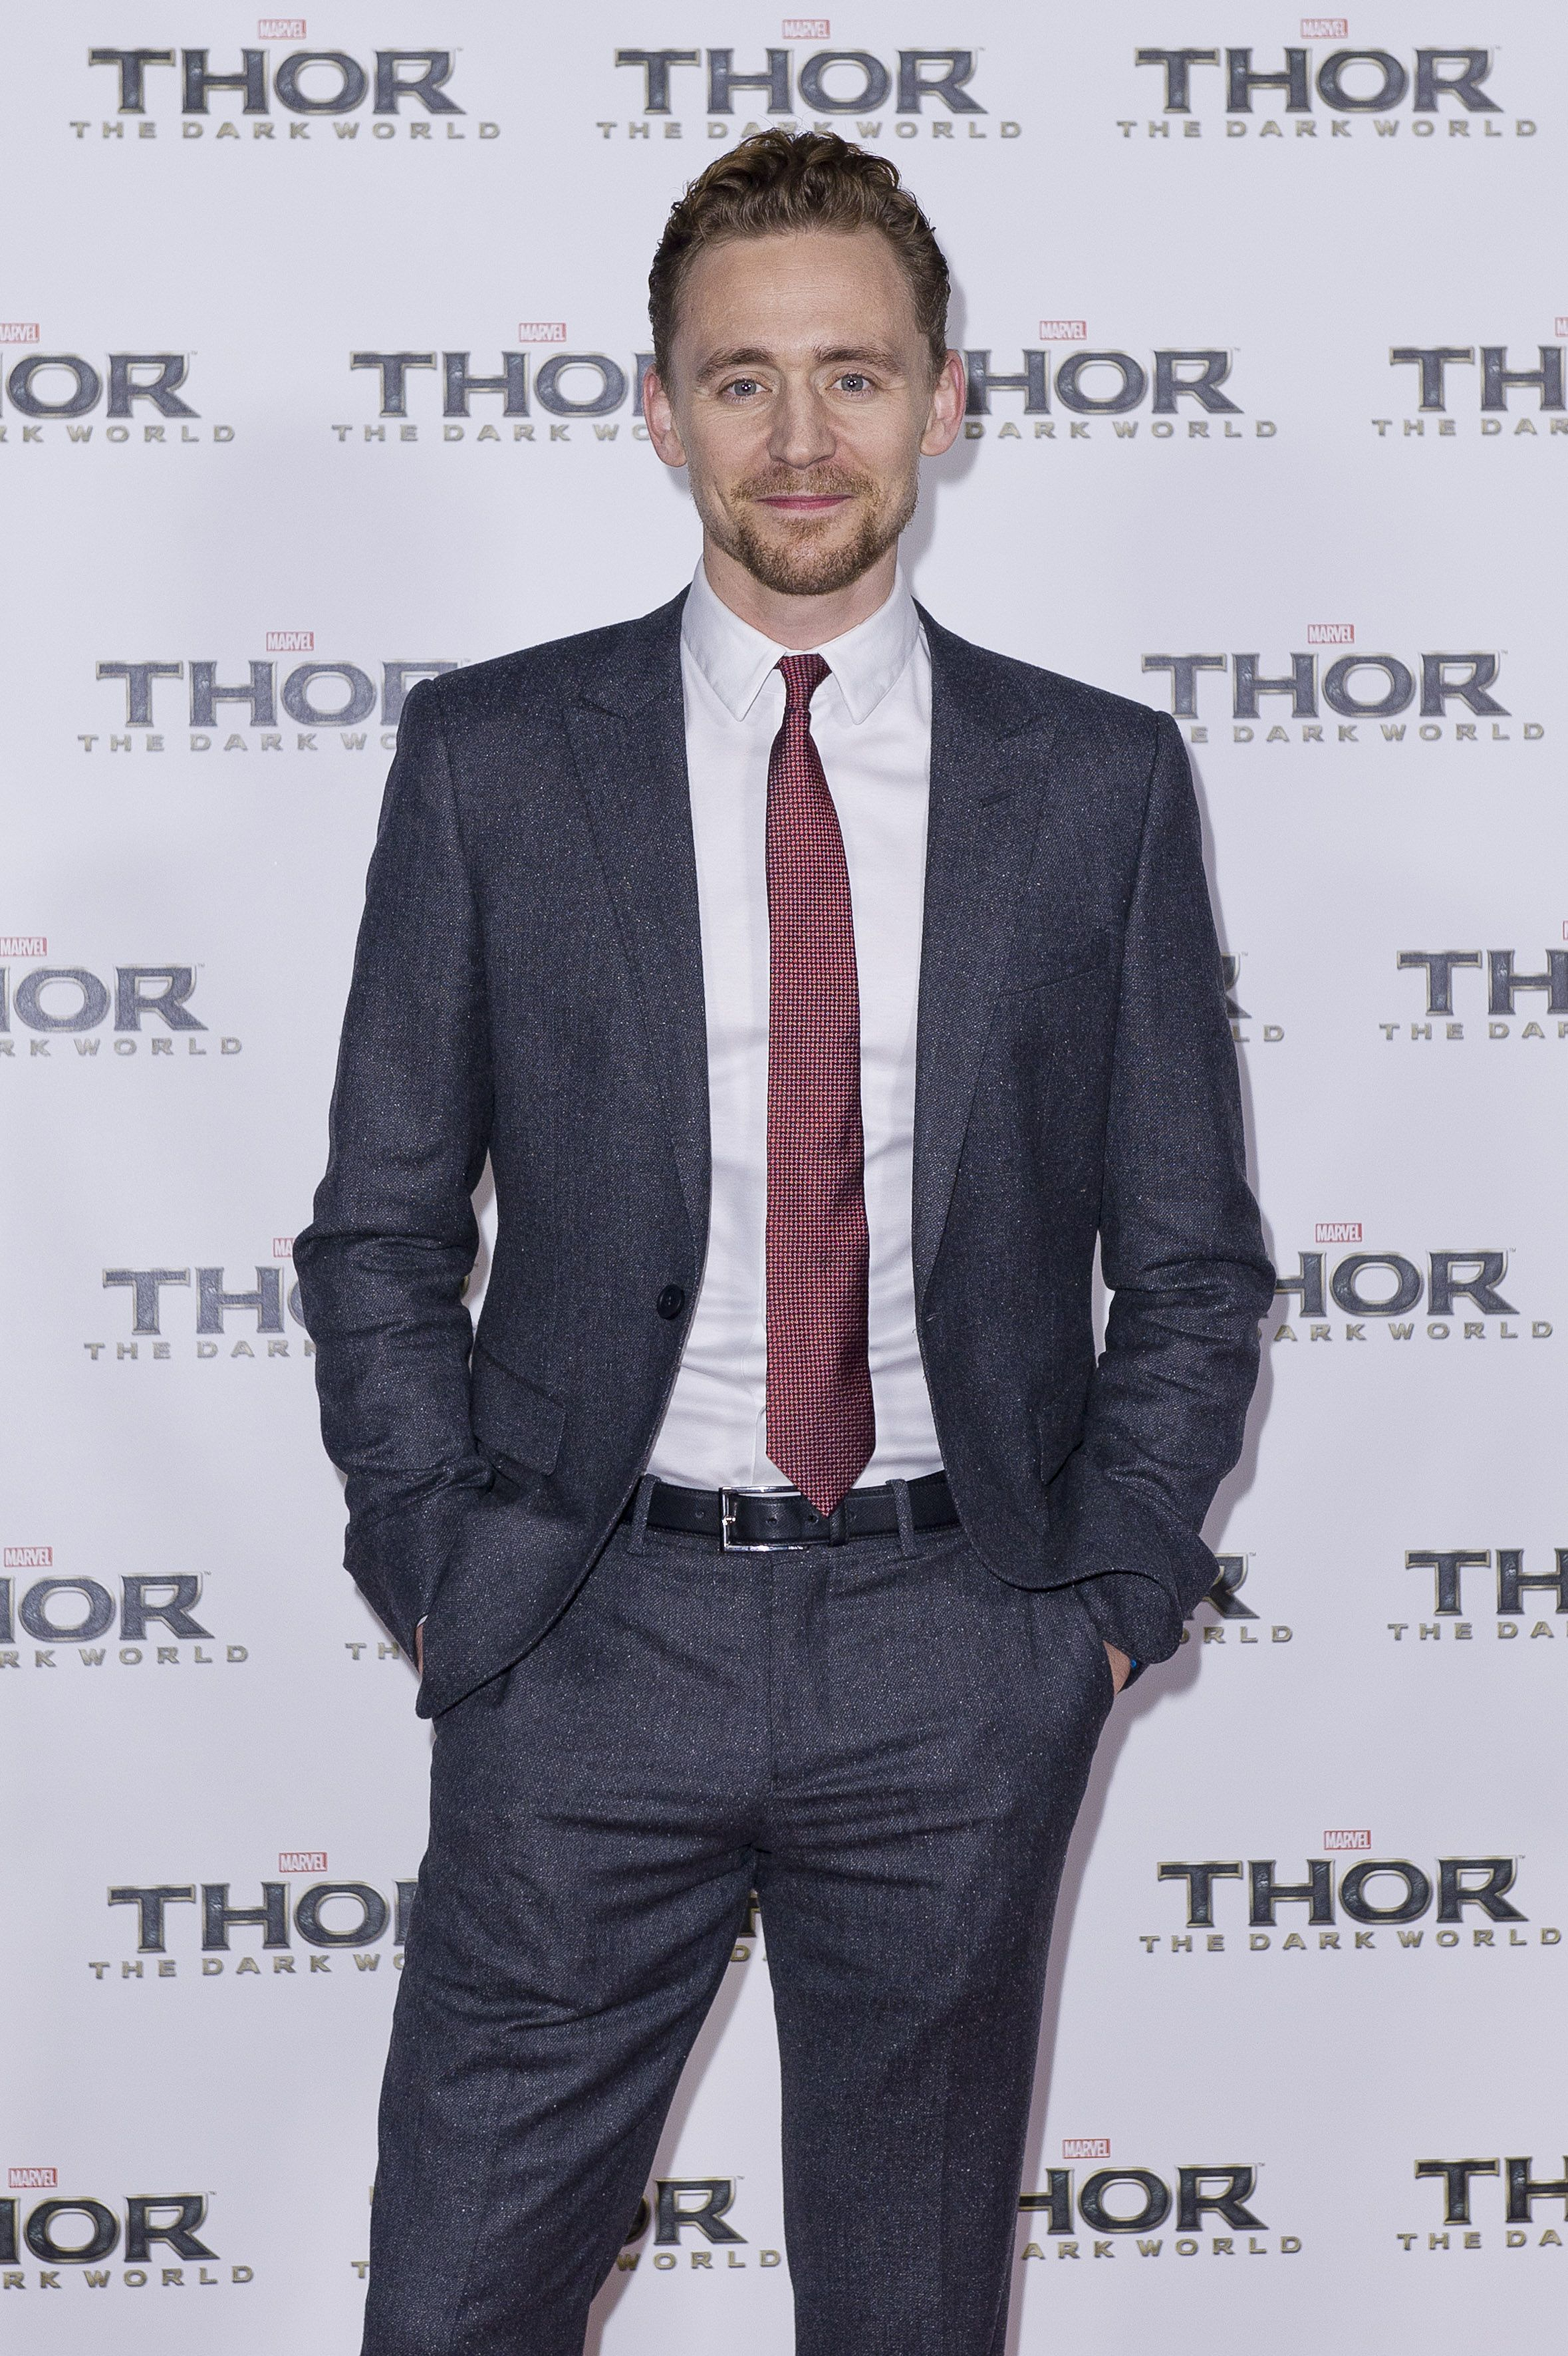 49336afbba2d Tom Hiddleston visits Australia to greet fans and talk Loki and Marvel's  Thor: The Dark